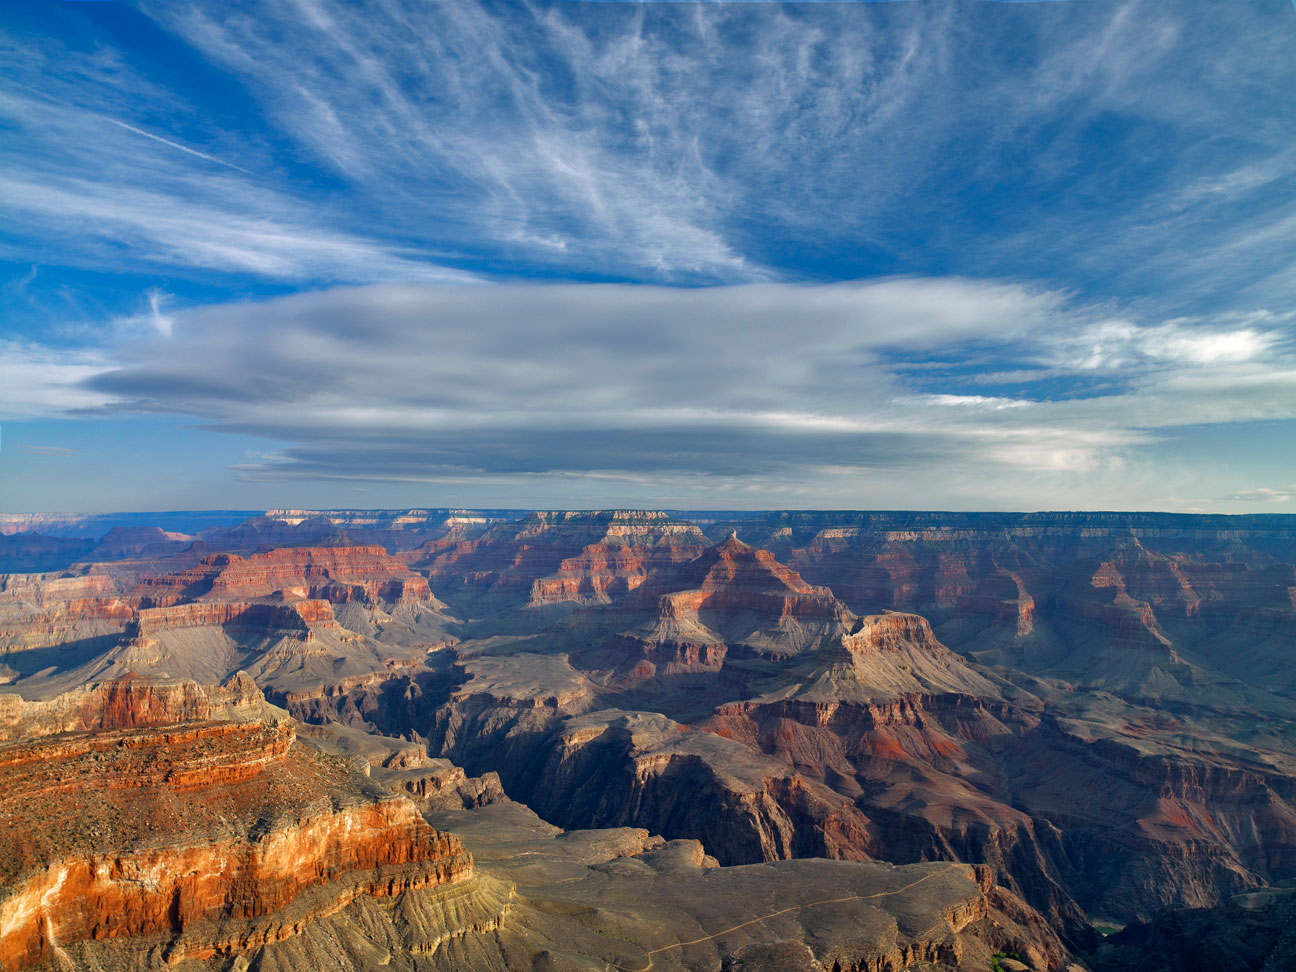 BIG SKY GRAND CANYON